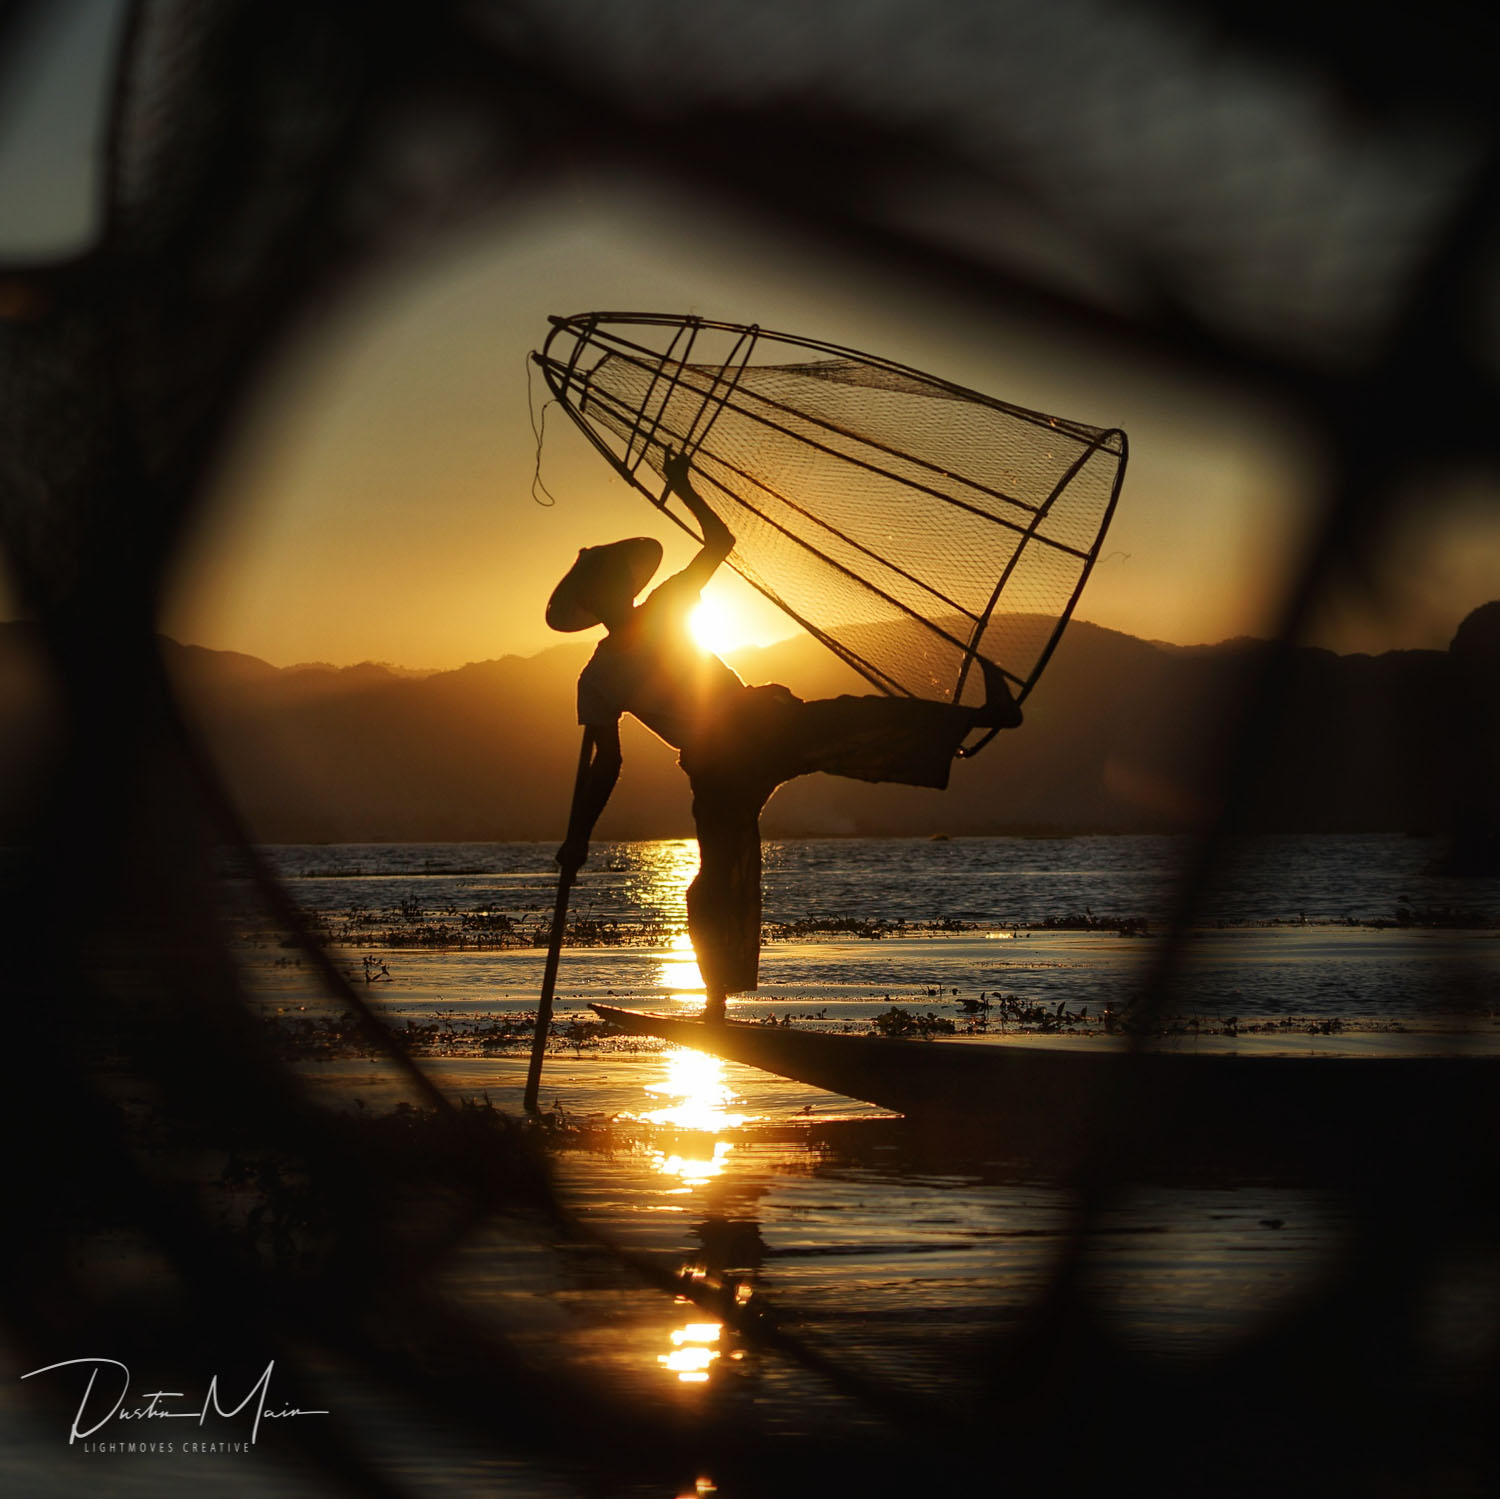 A fisherman performs a delicate balancing act on stunning Inle Lake at sunset.  © Dustin Main 2017